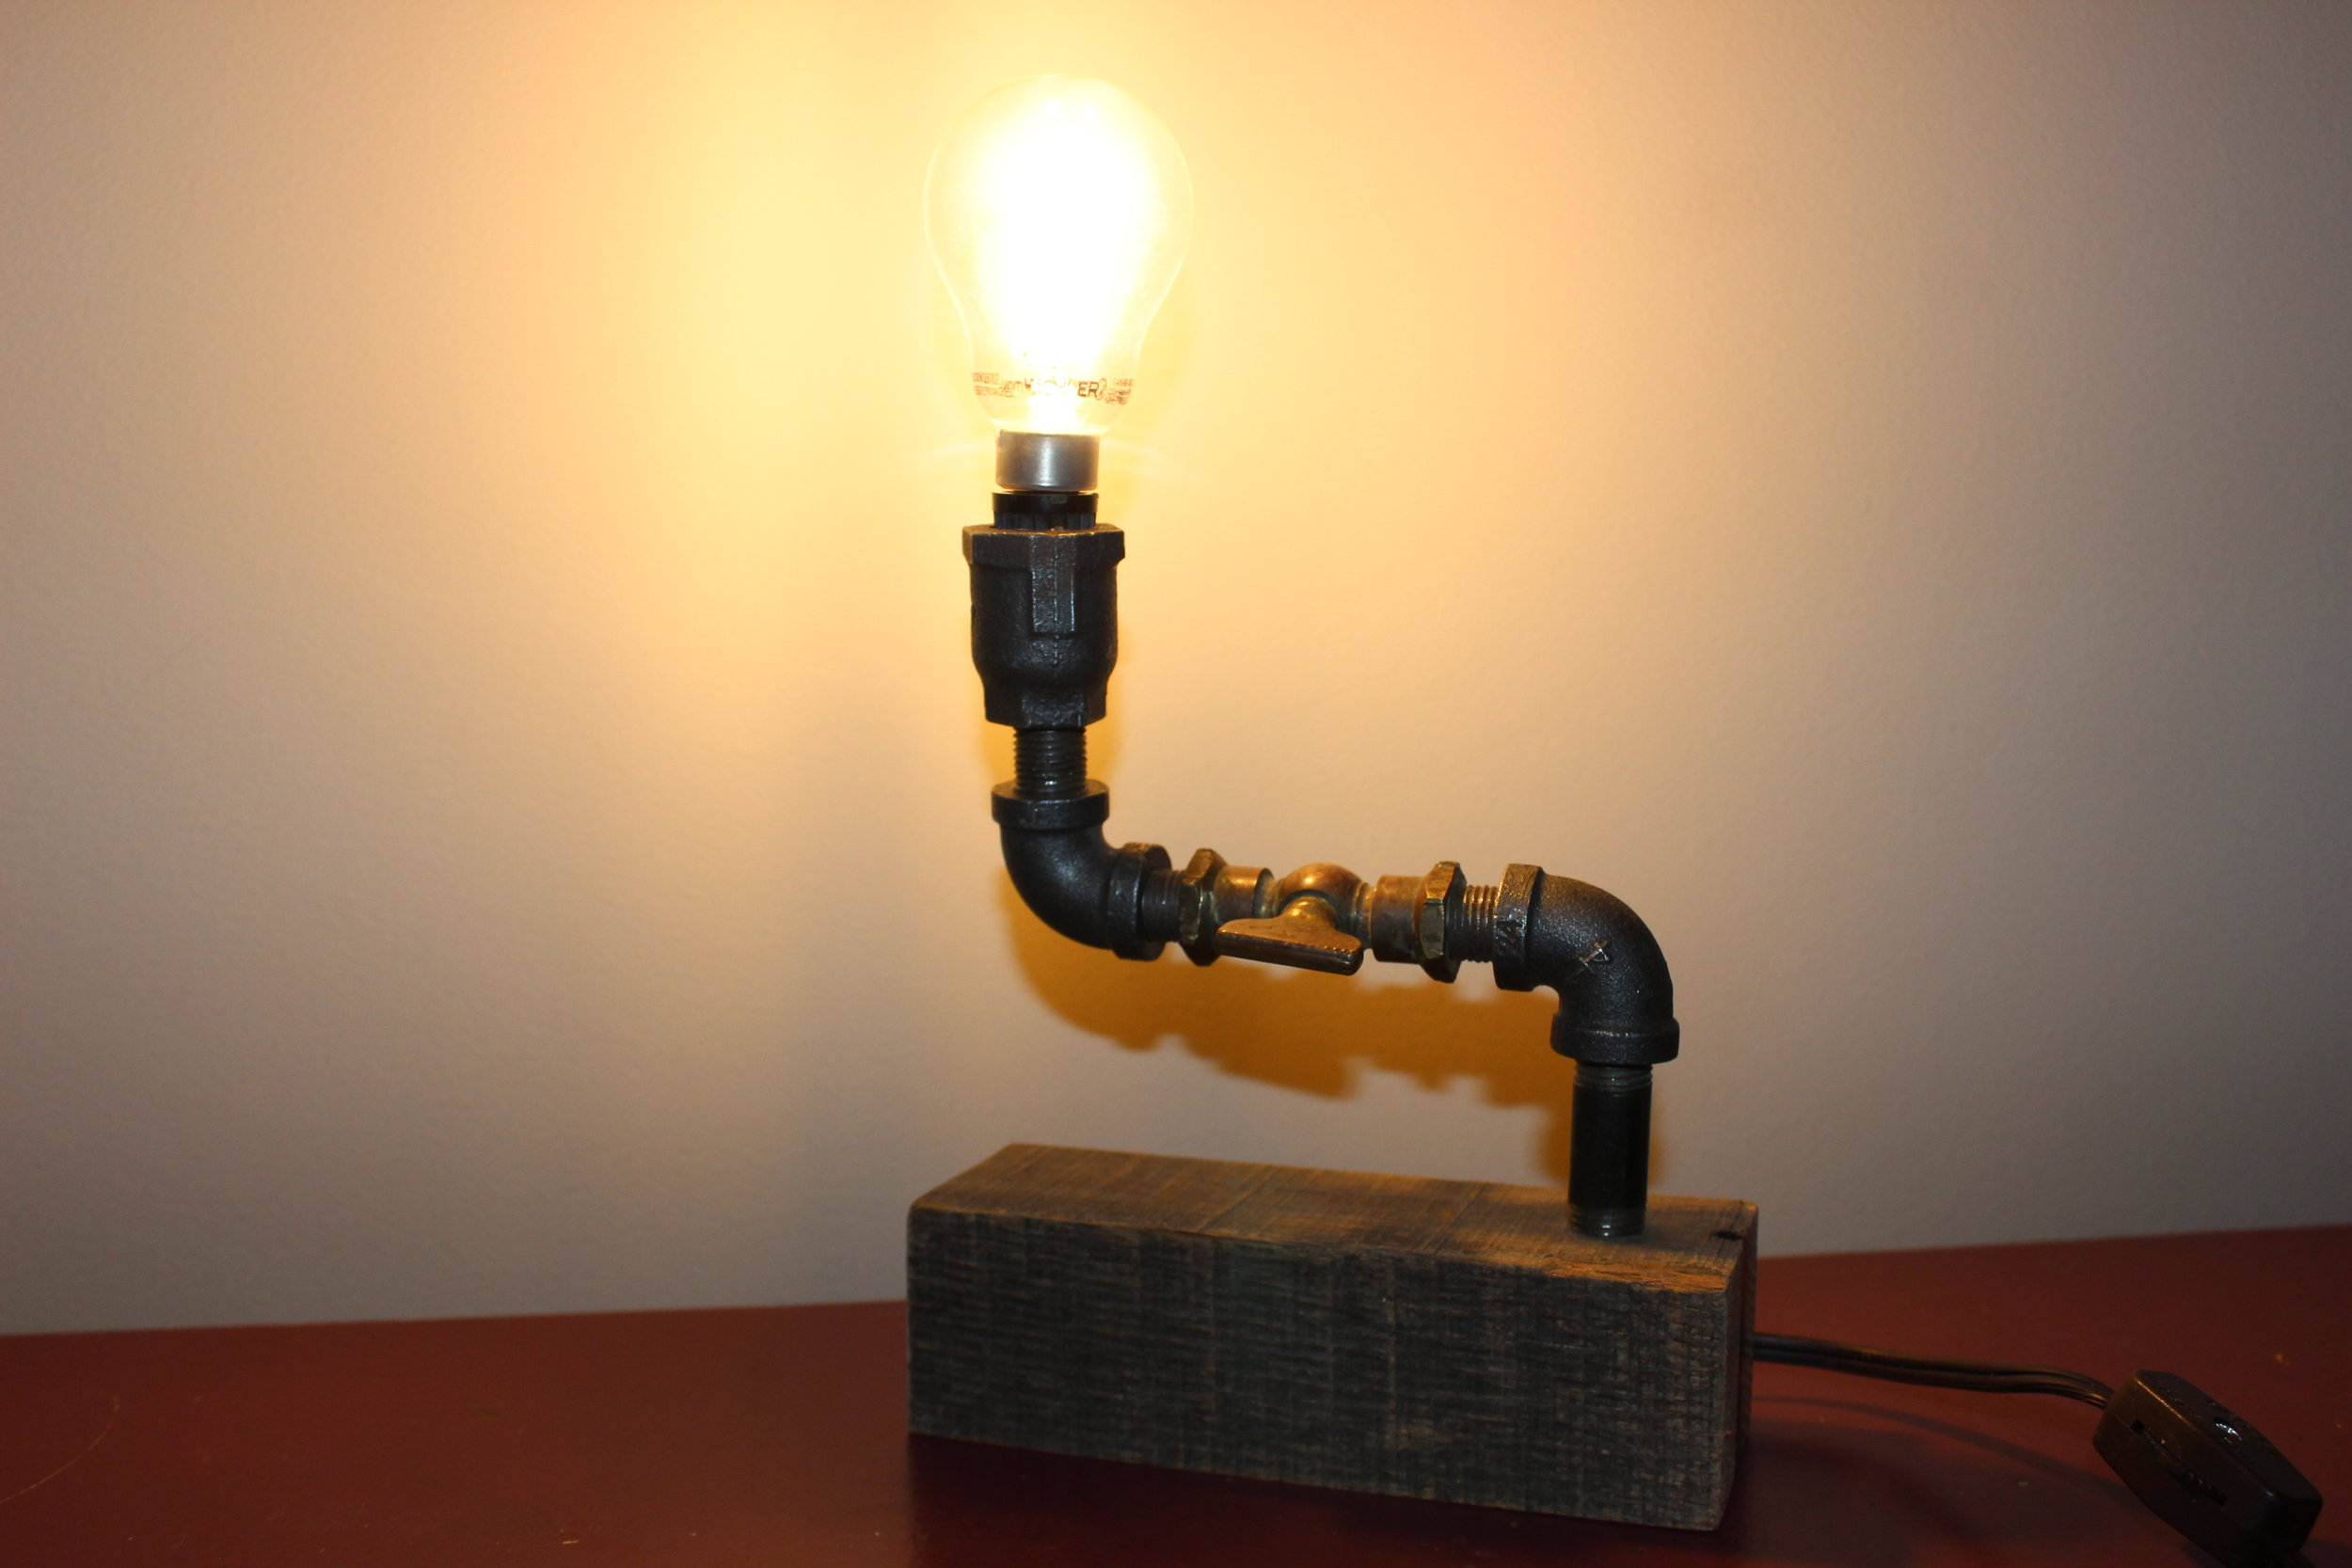 Simple Steampunk Lamp - This is a handcrafted lamp by a local craftsman.Value $30